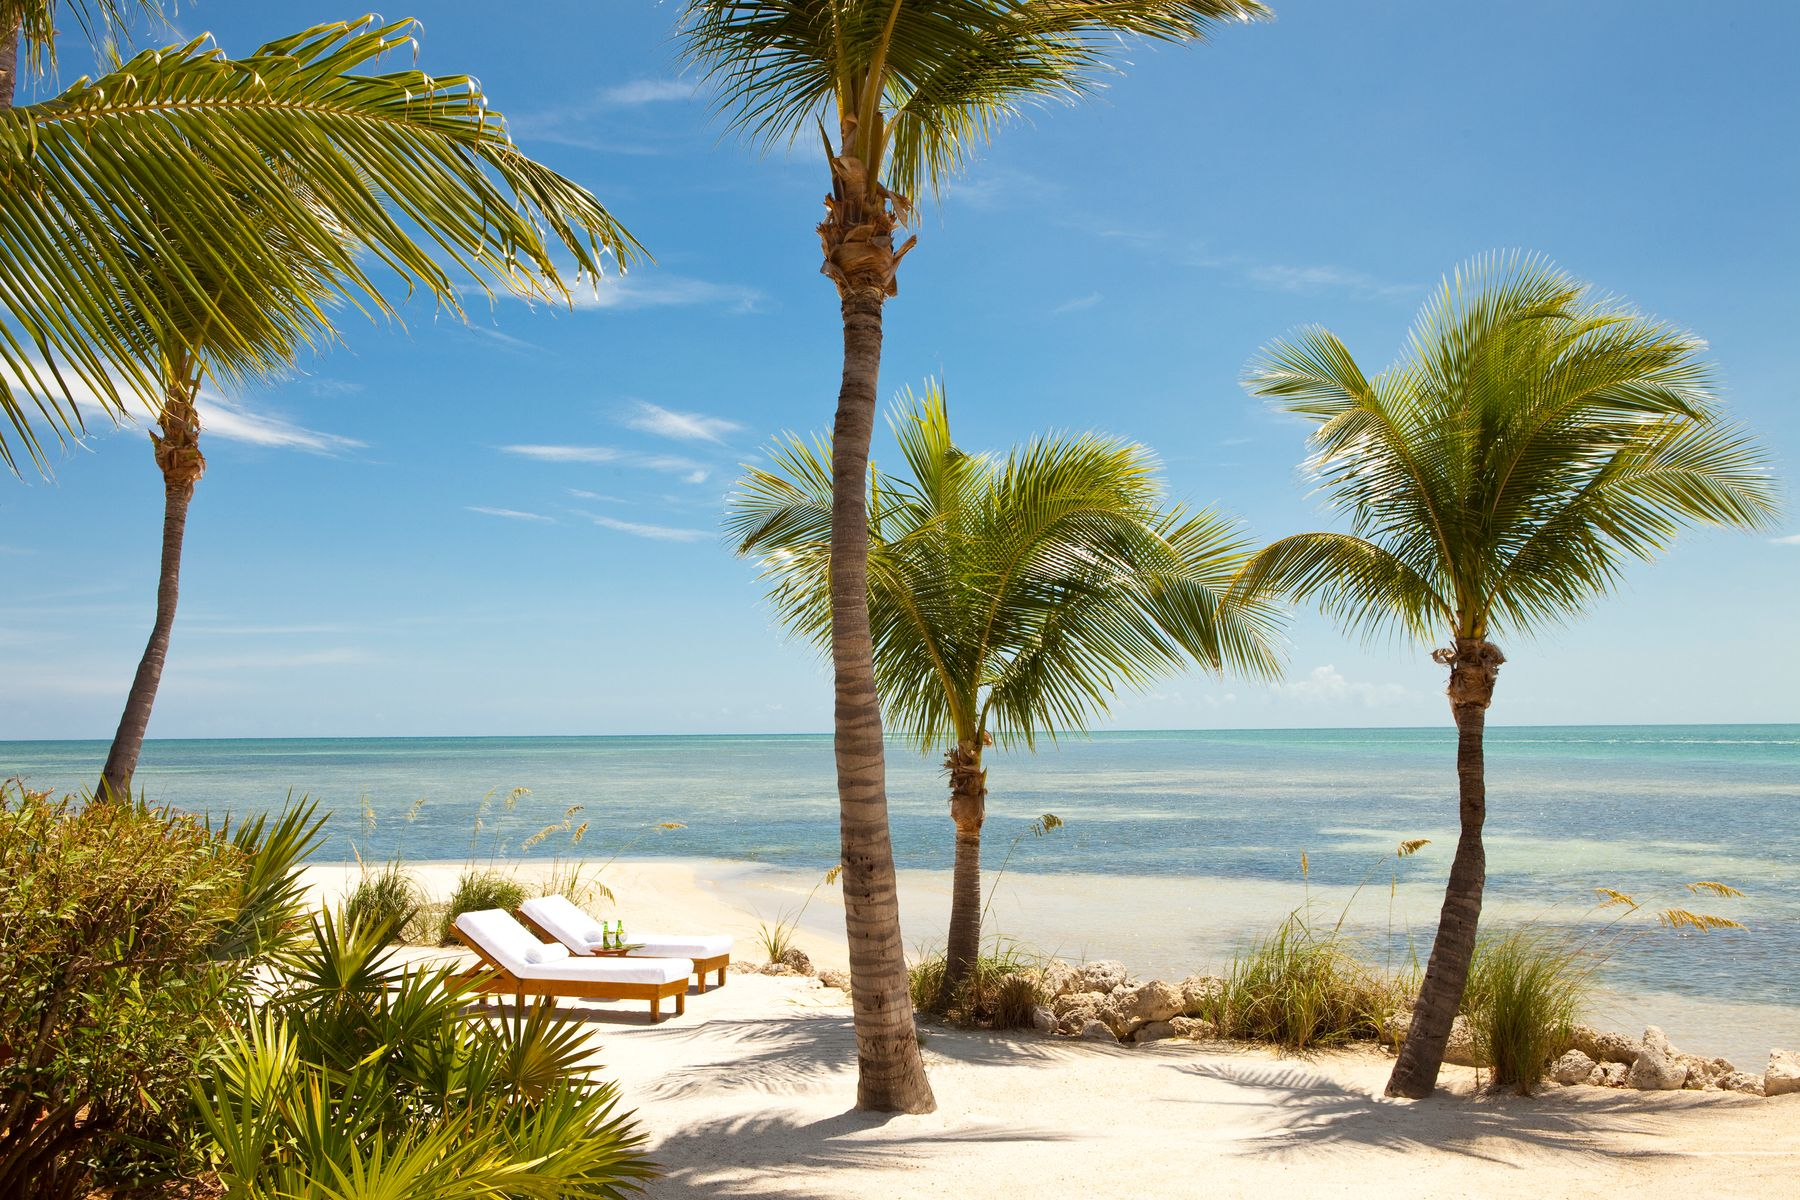 Beachside loungers at the Little Palm Island Resort & Spa